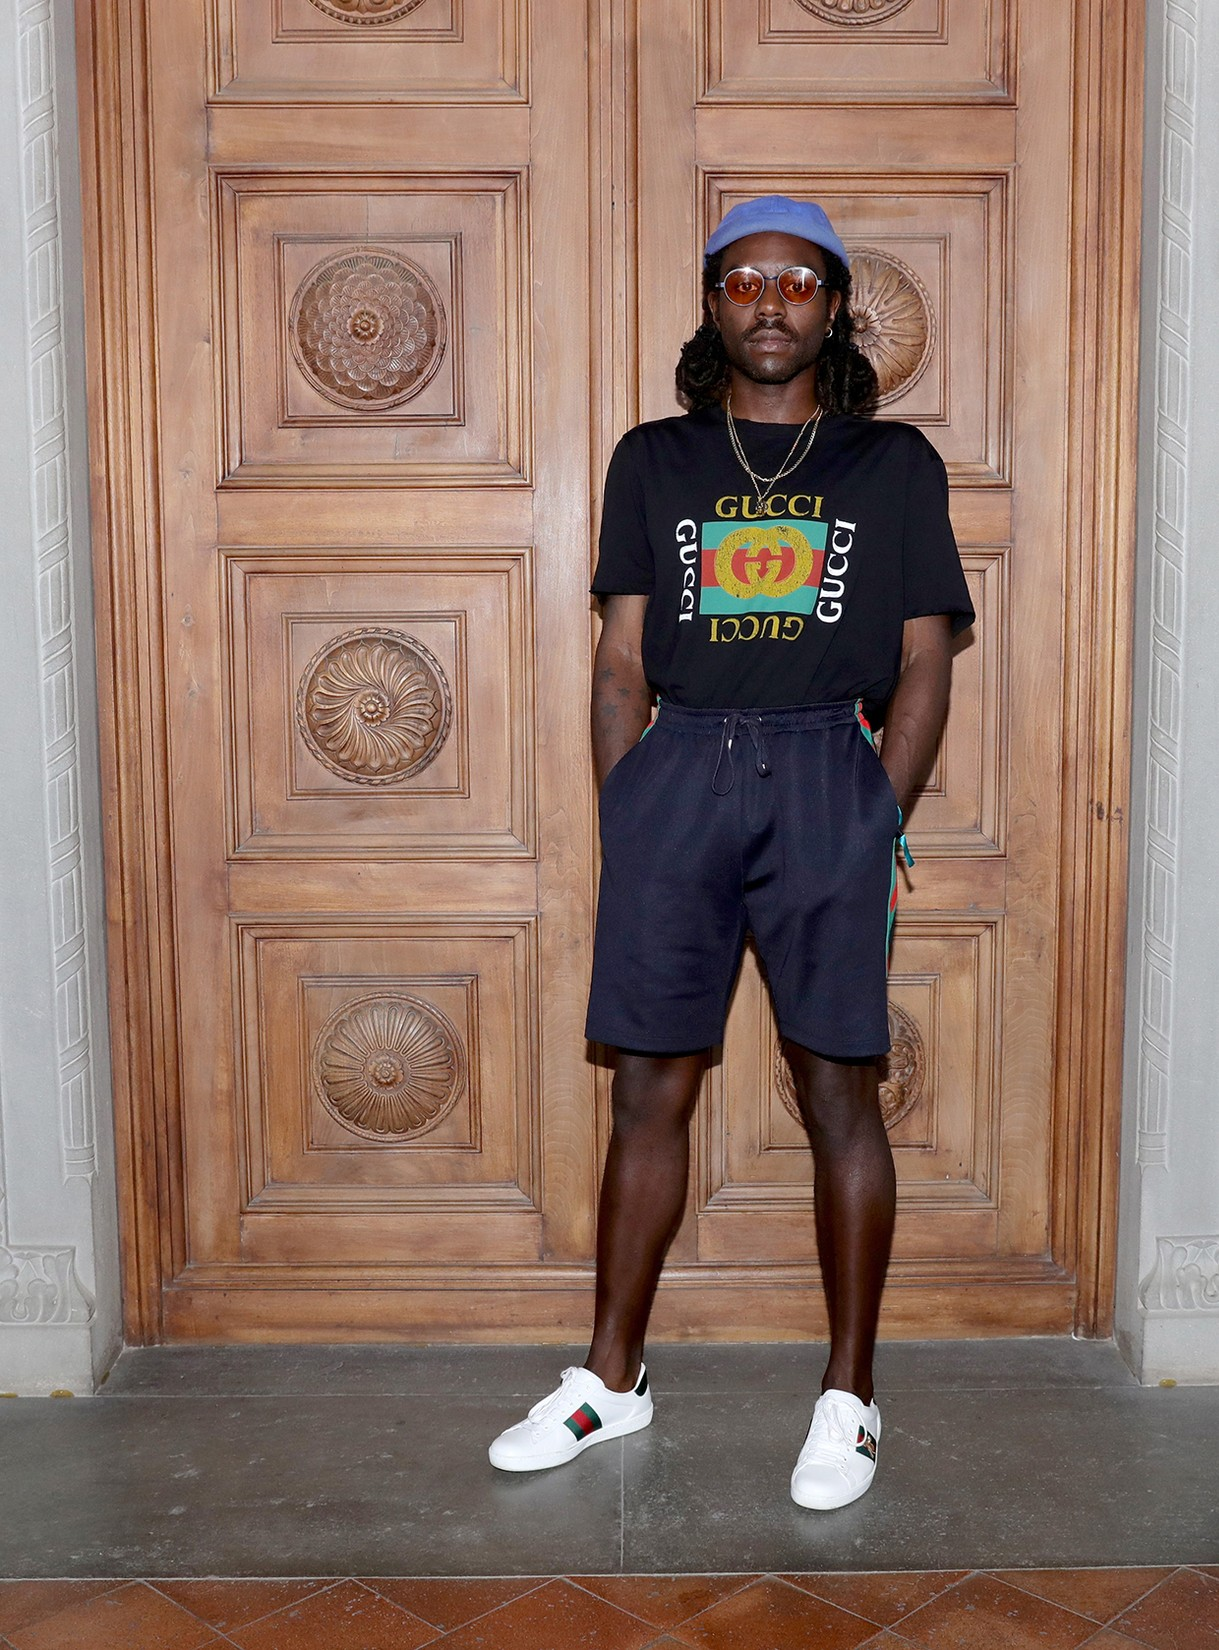 Dev Hynes attends the Gucci Cruise 2018 After show party at Serre Torrigiani on May 29, 2017 in Florence, Italy.